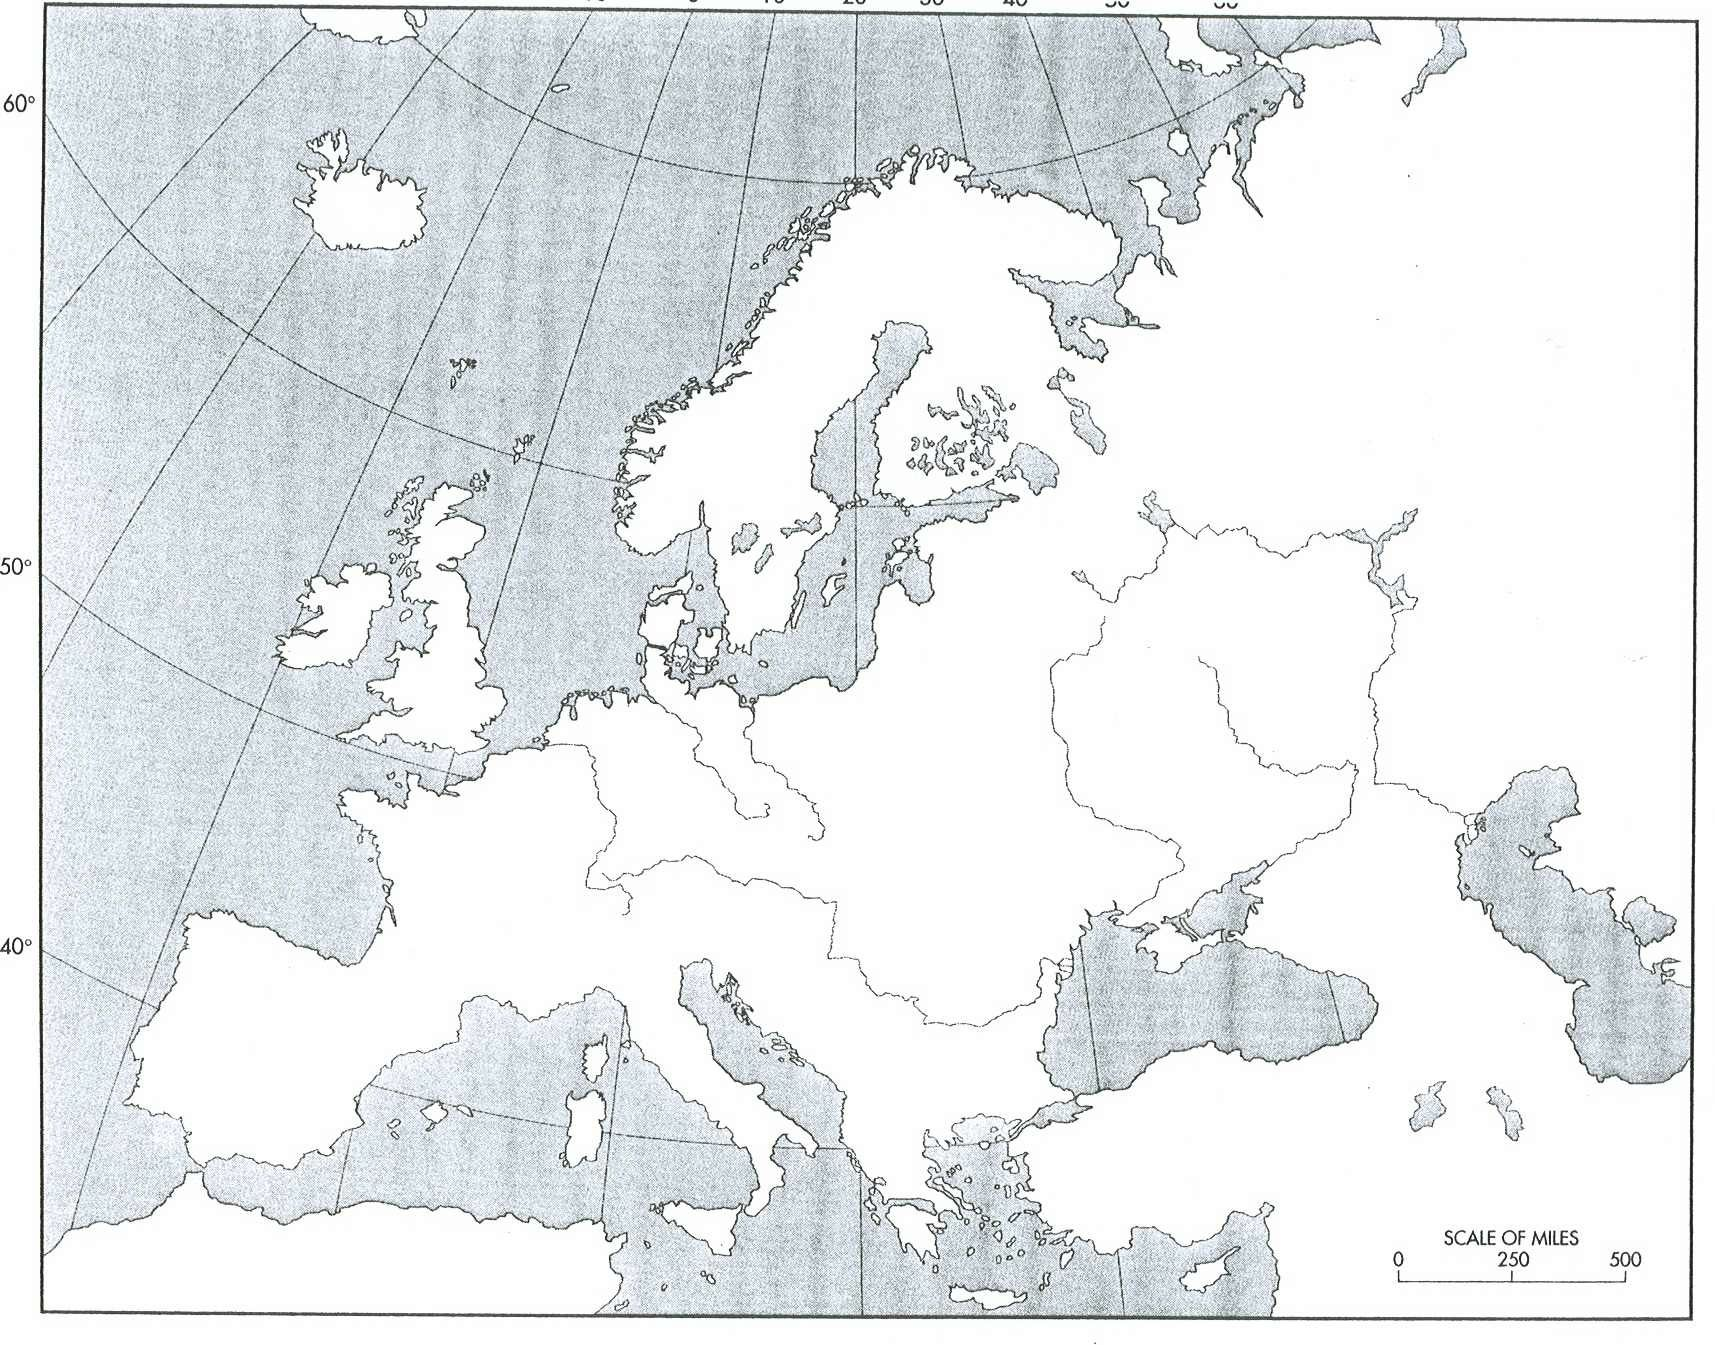 World war europe map blank miscellaneous pinterest outlines world war europe map blank gumiabroncs Gallery